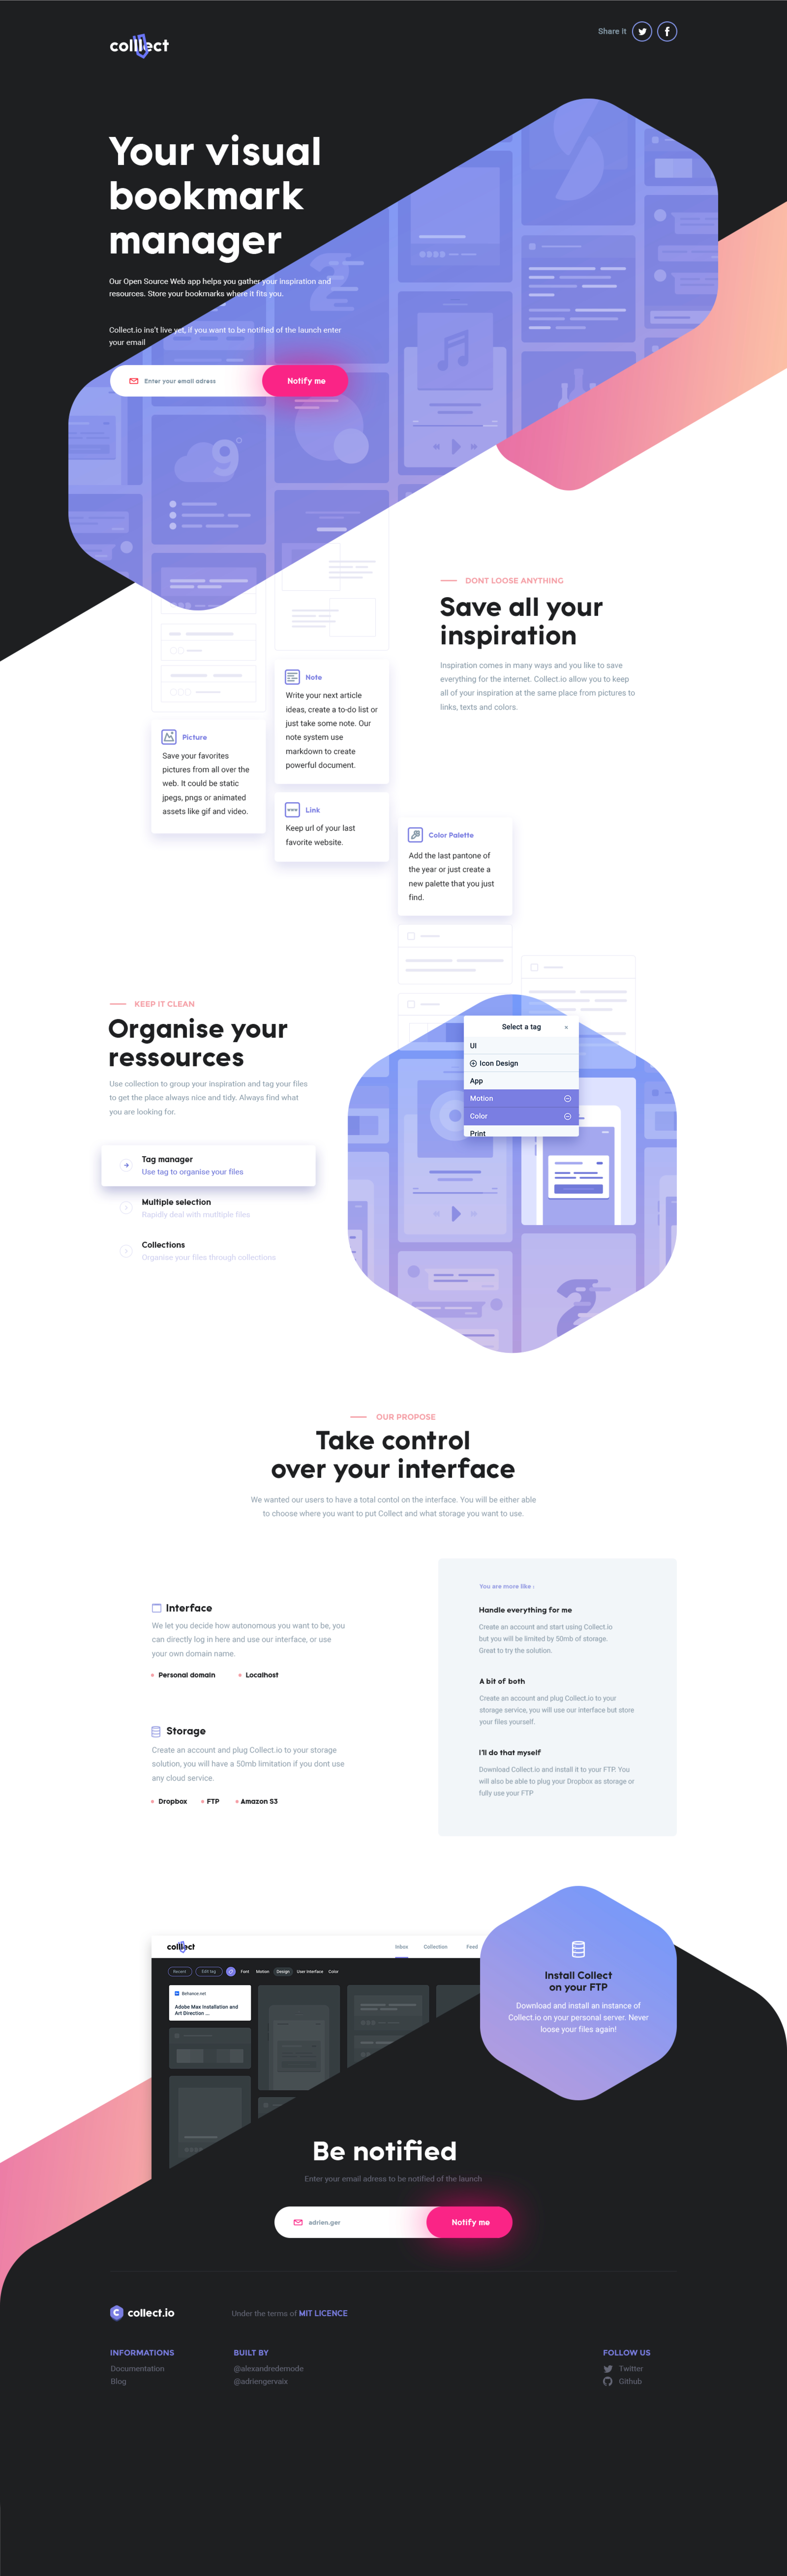 colllect landing page